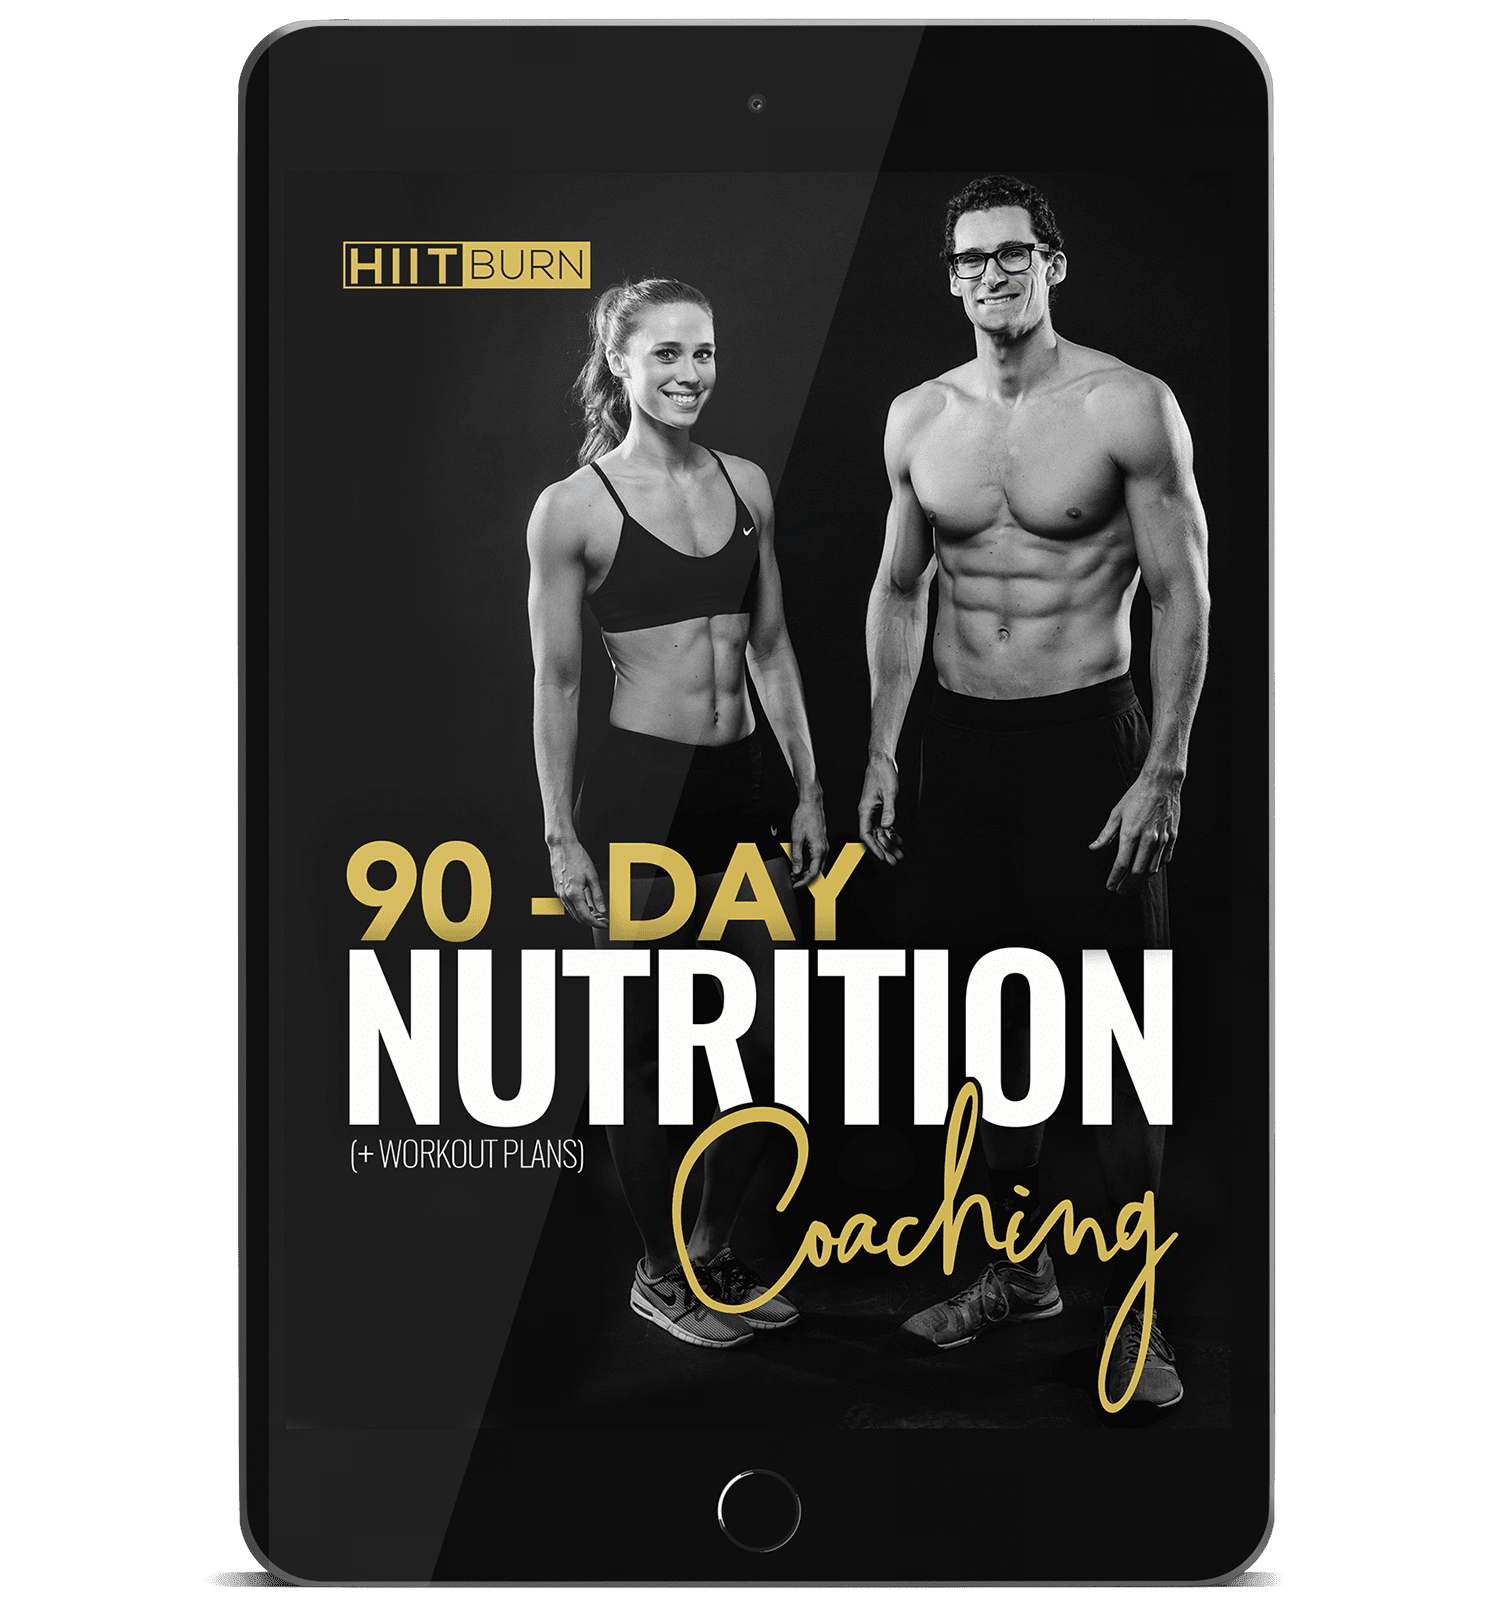 90-Day Nutrition Coaching Plan